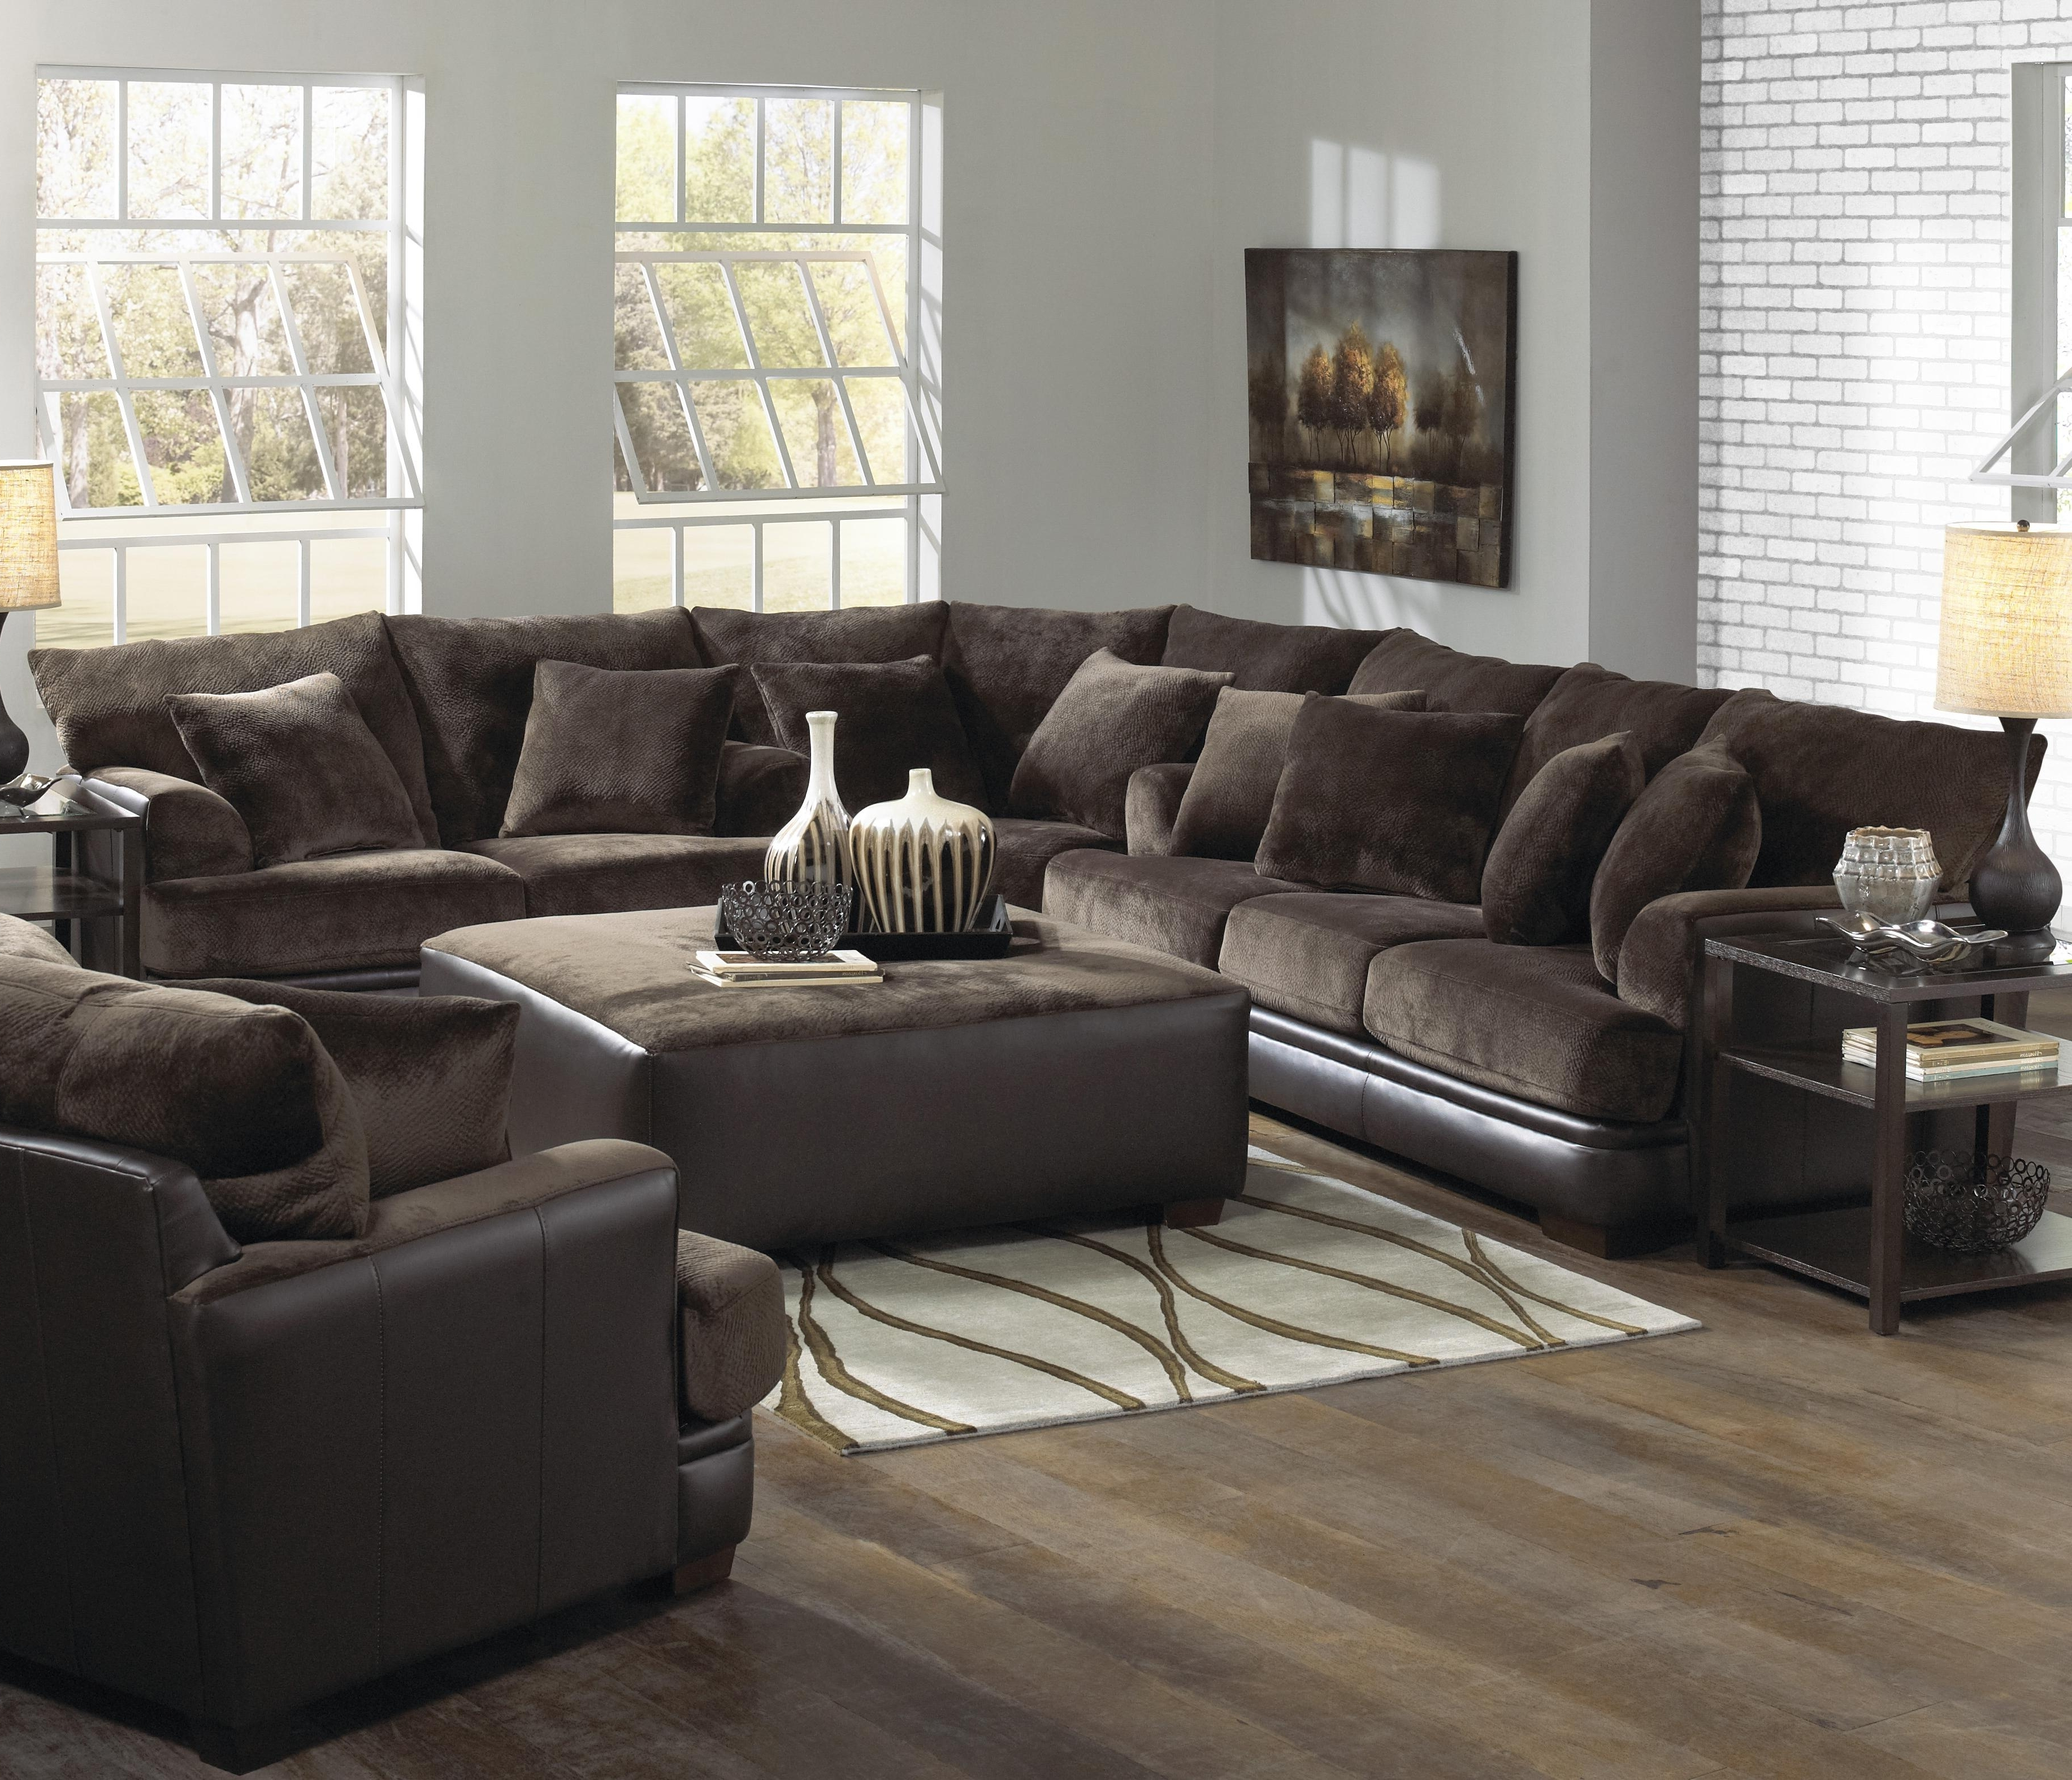 Popular Large Comfortable Sectional Sofas For Extra Large Couches Comfortable Sofa Oversized Deep Couch Extra (View 8 of 15)